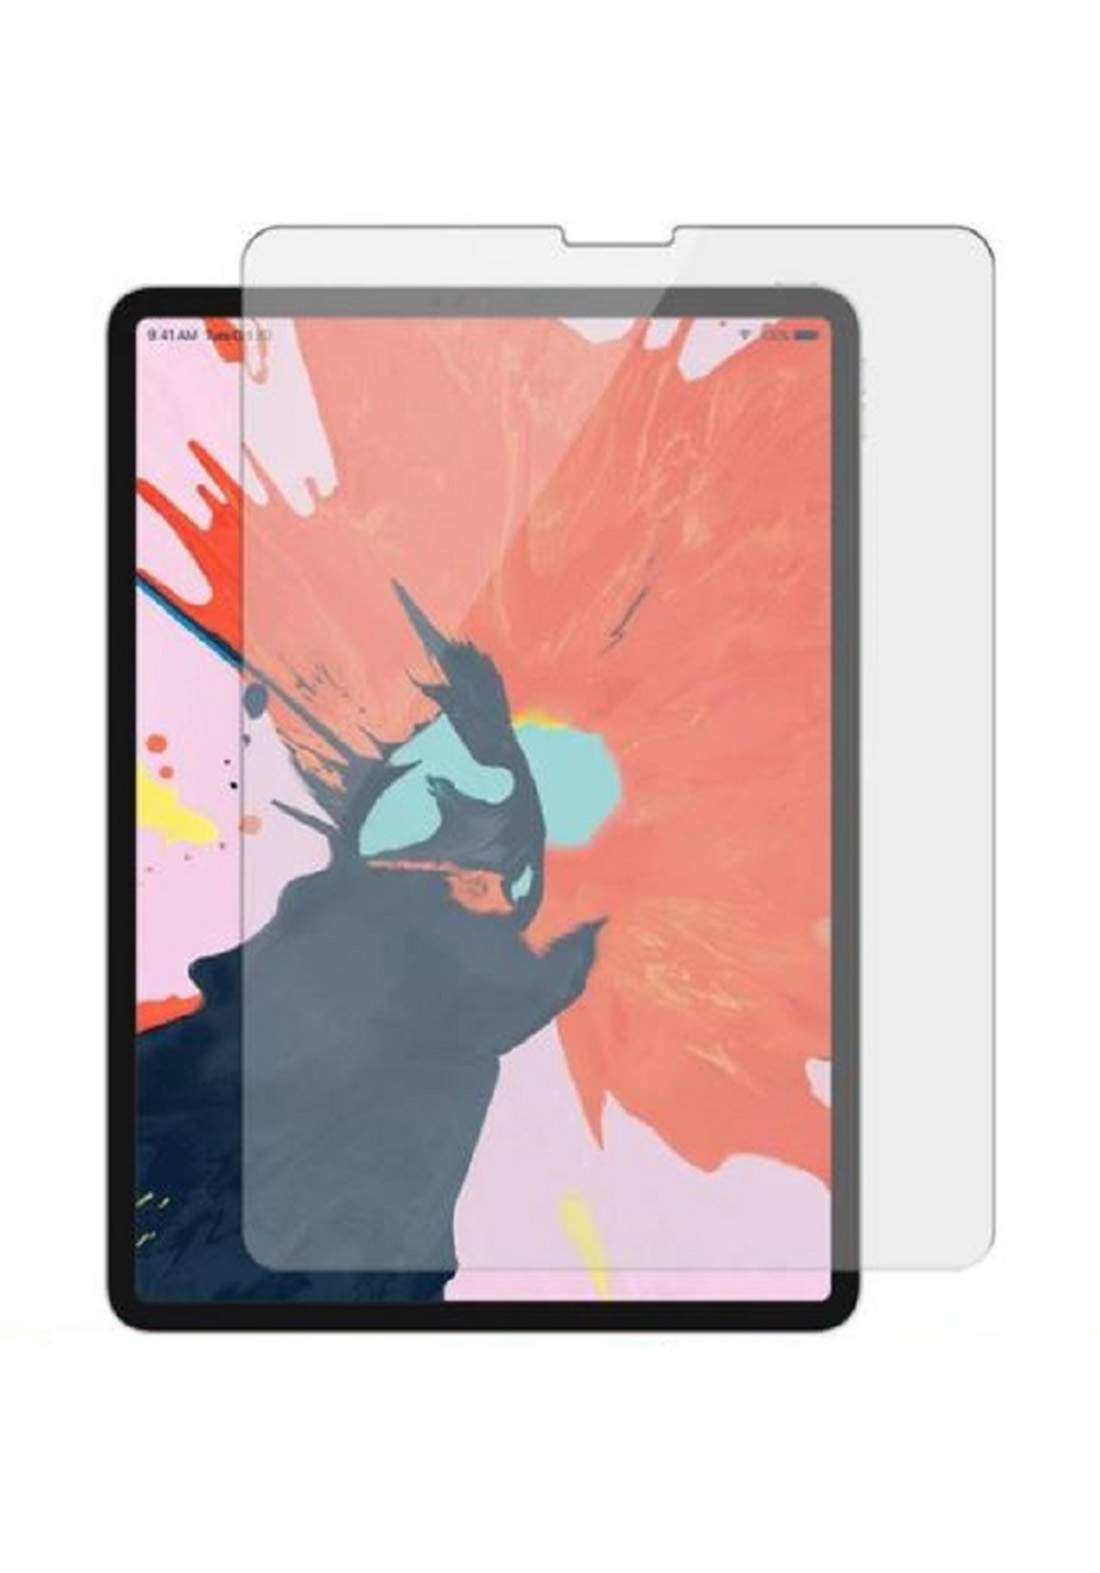 Tempered Glass Screen Protector For iPad Pro 12.9-inch واقي شاشة